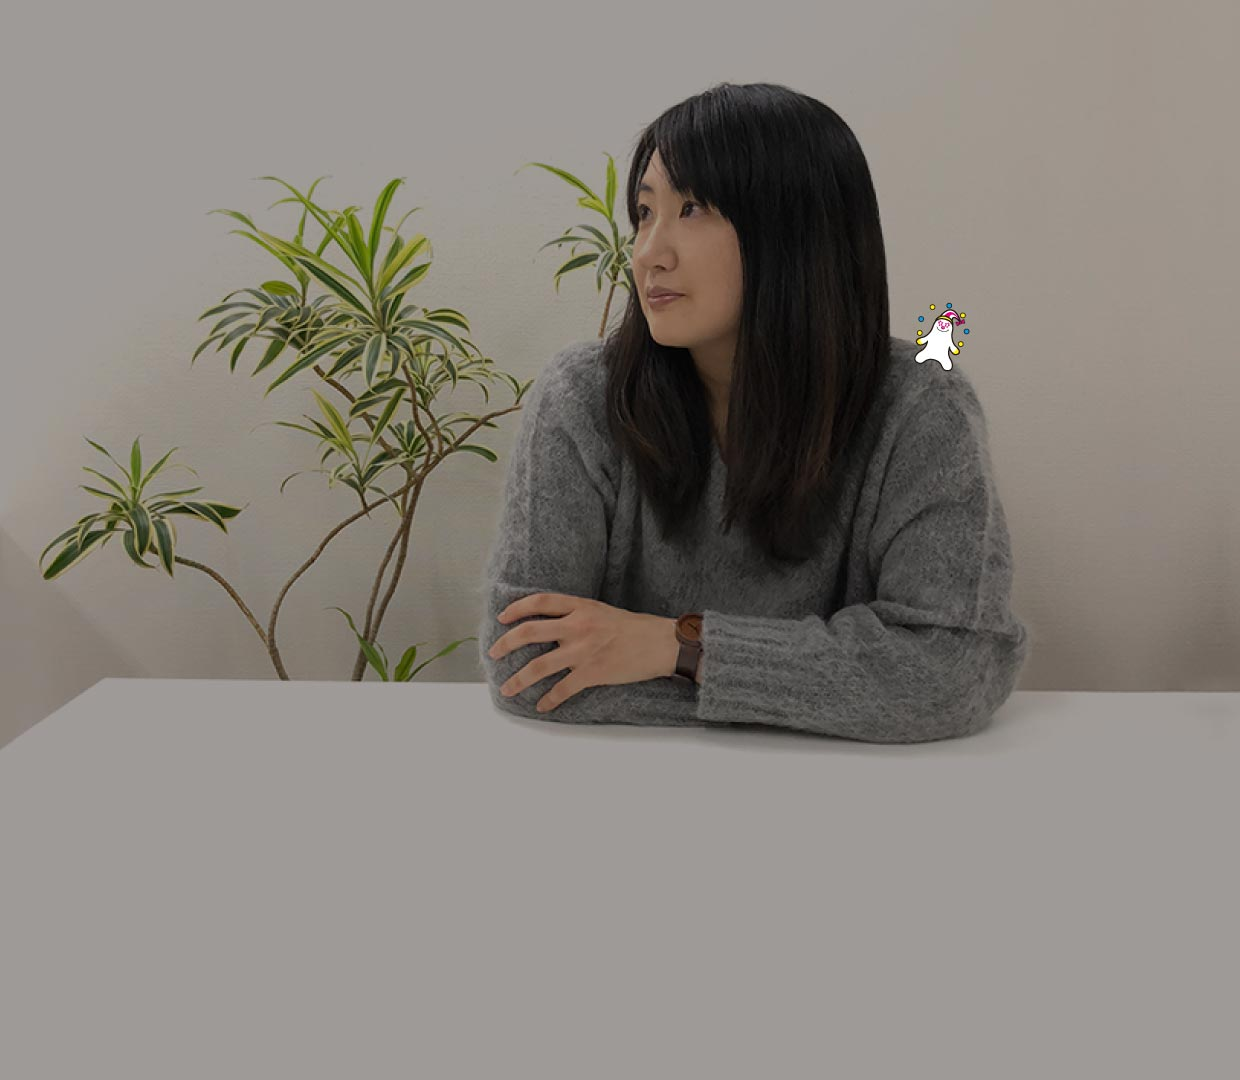 graphic designer 山本麻登佳